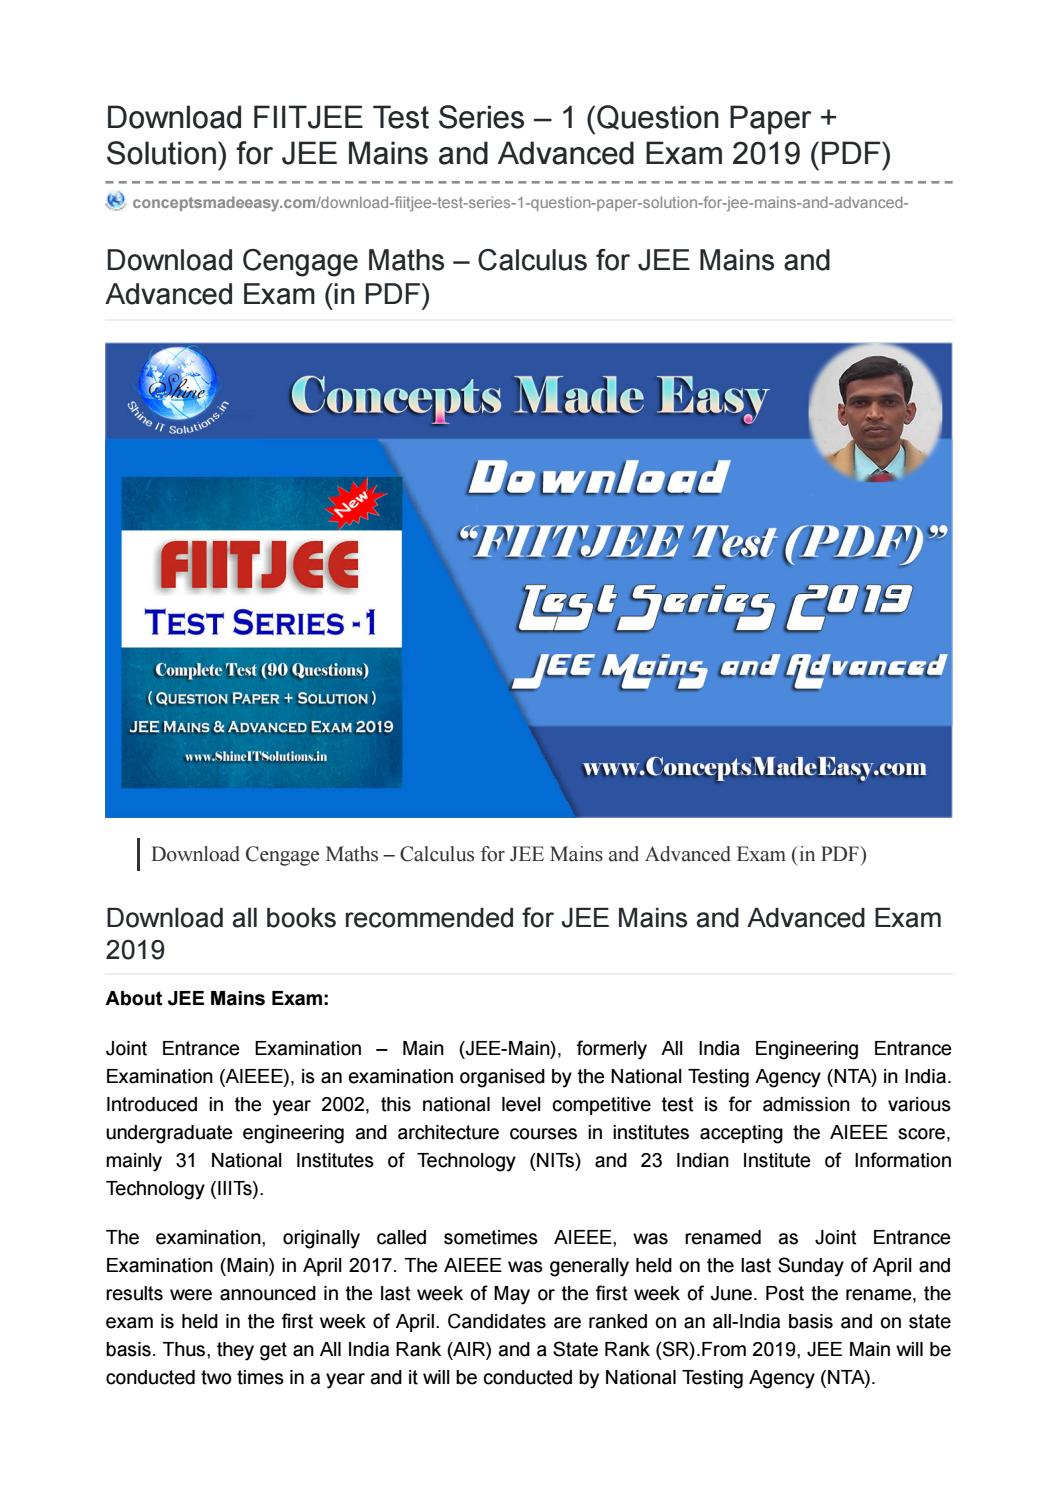 Download Fiitjee Test Series Question Paper Solution For Jee Mains And Advanced Exam 2019 Pdf By Concepts Made Easy By Er Ajay Kumar Issuu